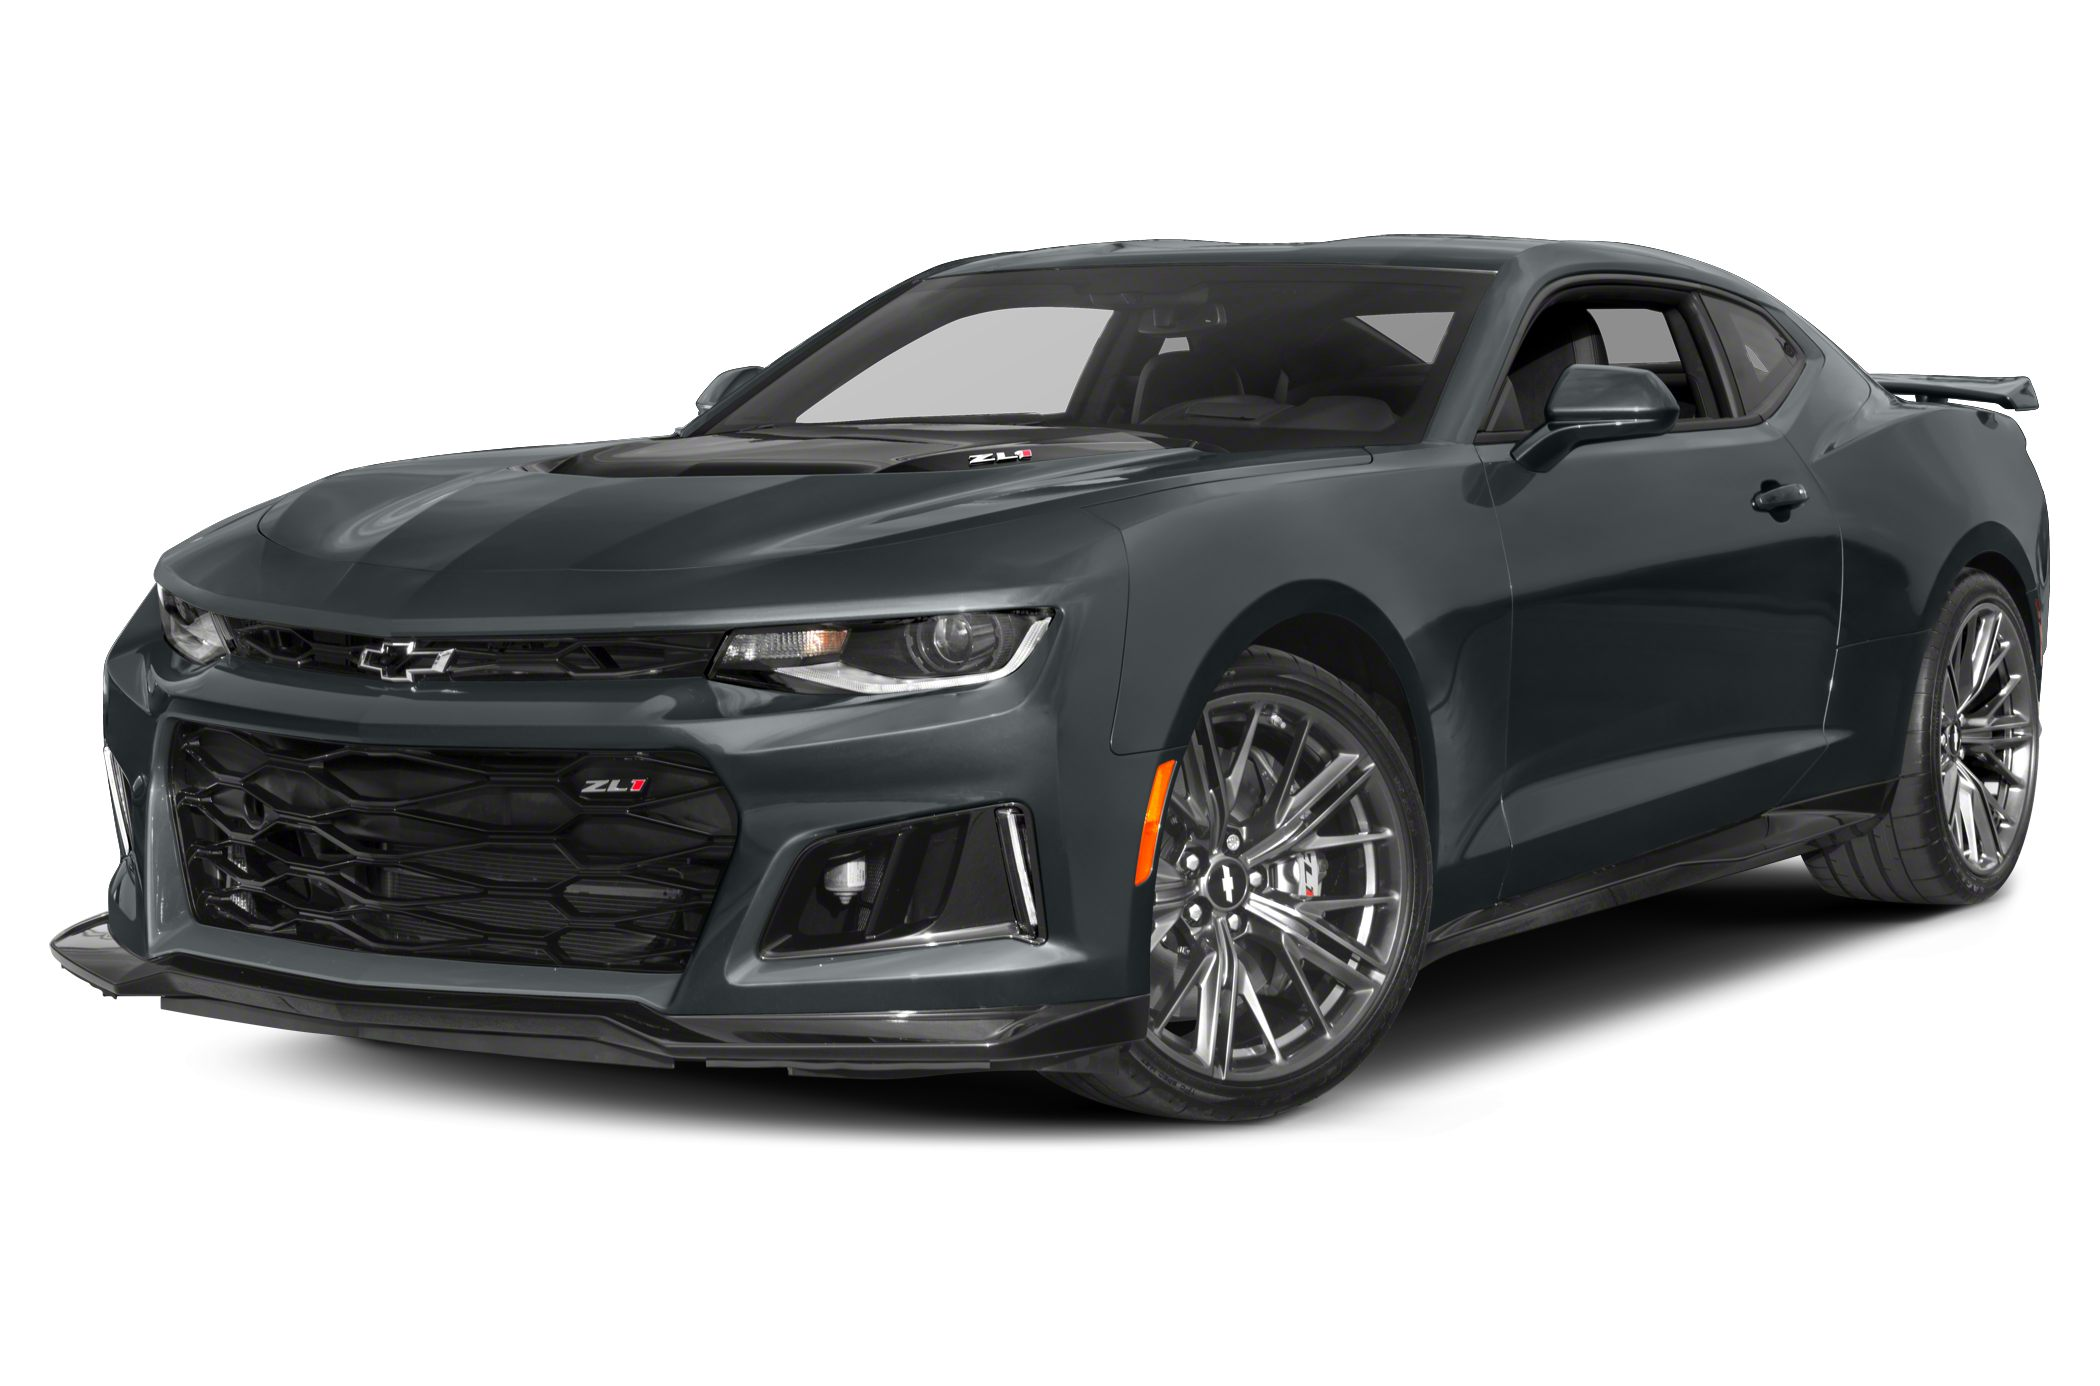 2018 Chevrolet Camaro ZL1 Price includes 500 - GM Lease Loyalty Private Offer Exp 07022018